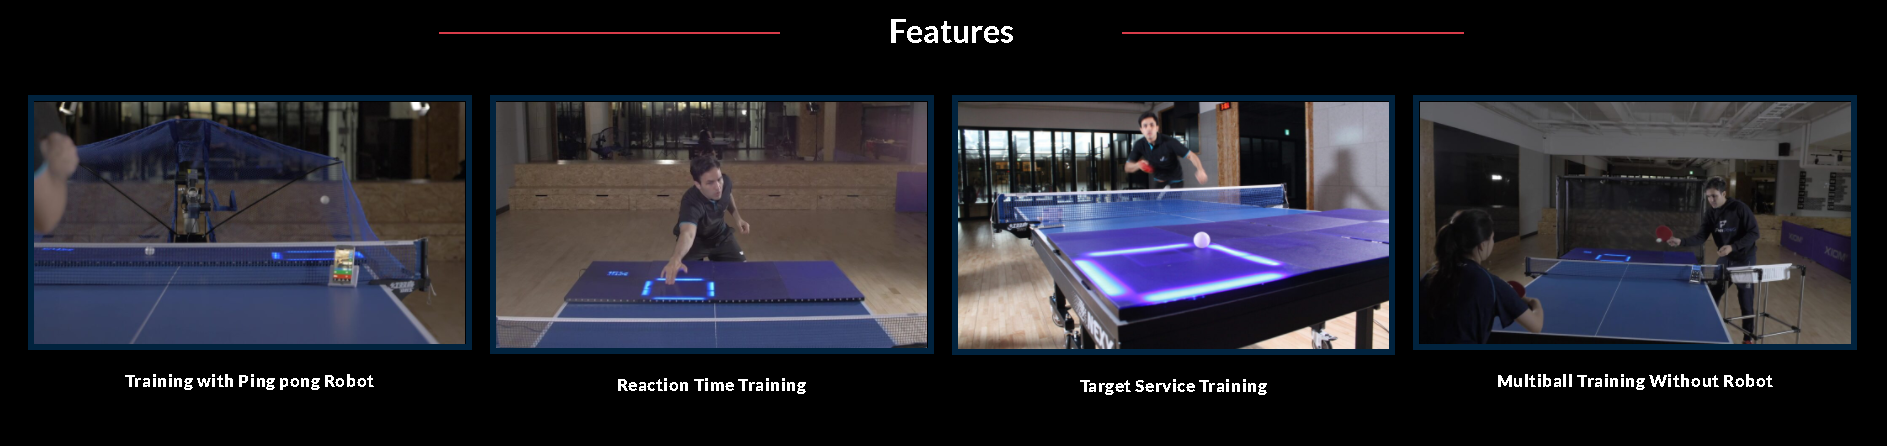 AI Based Table Tennis Training Machine : Product Features